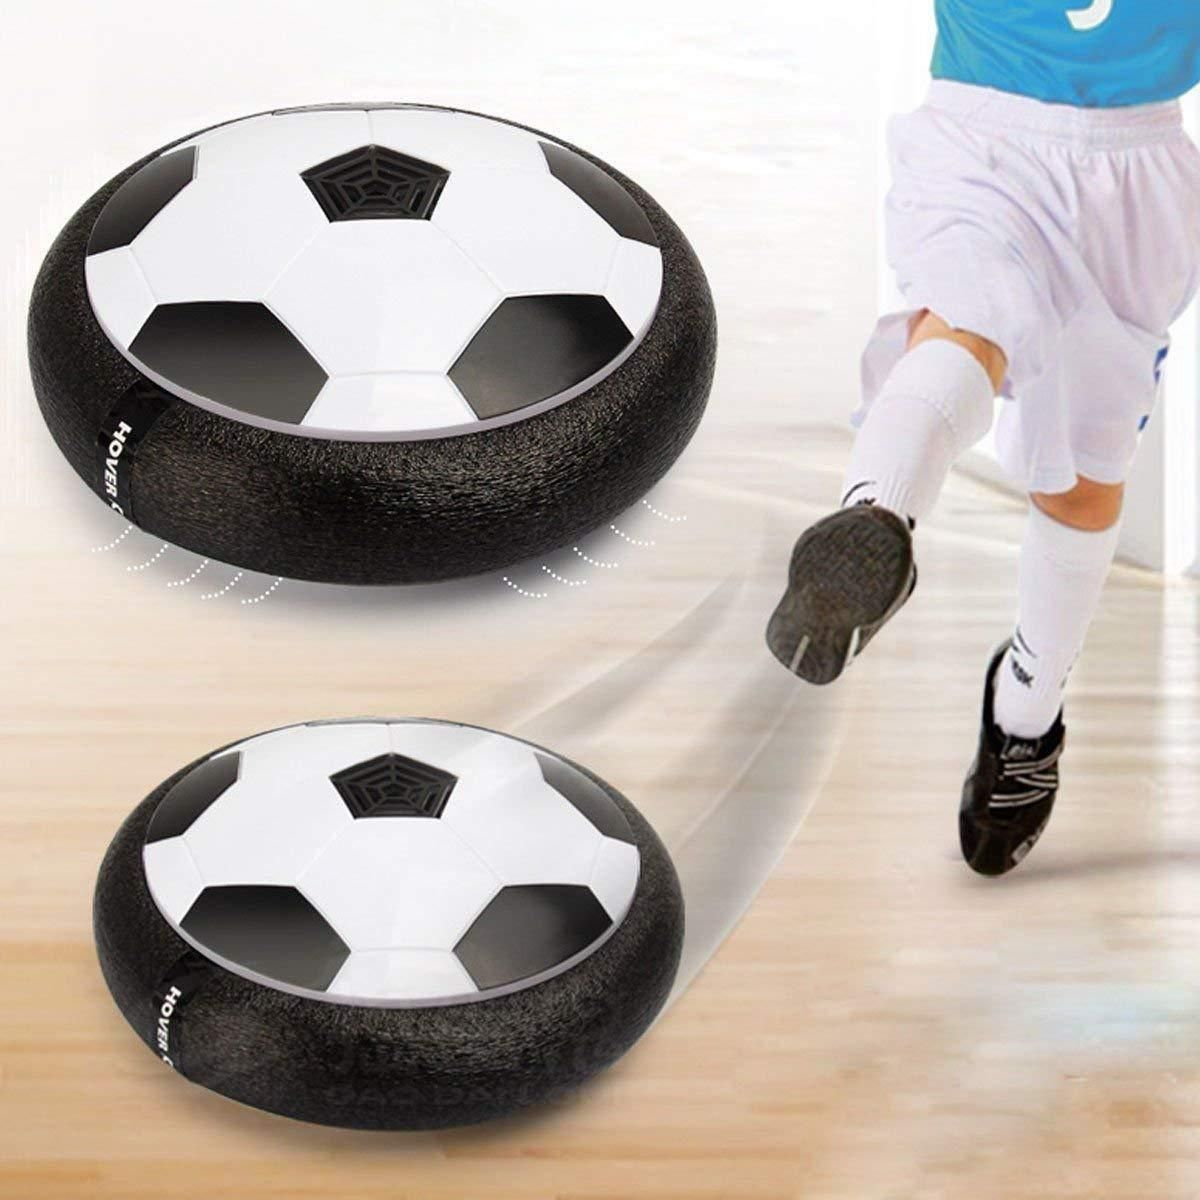 【50 OFF】 LED Air Power Soccer Ball Soccer ball, Soccer